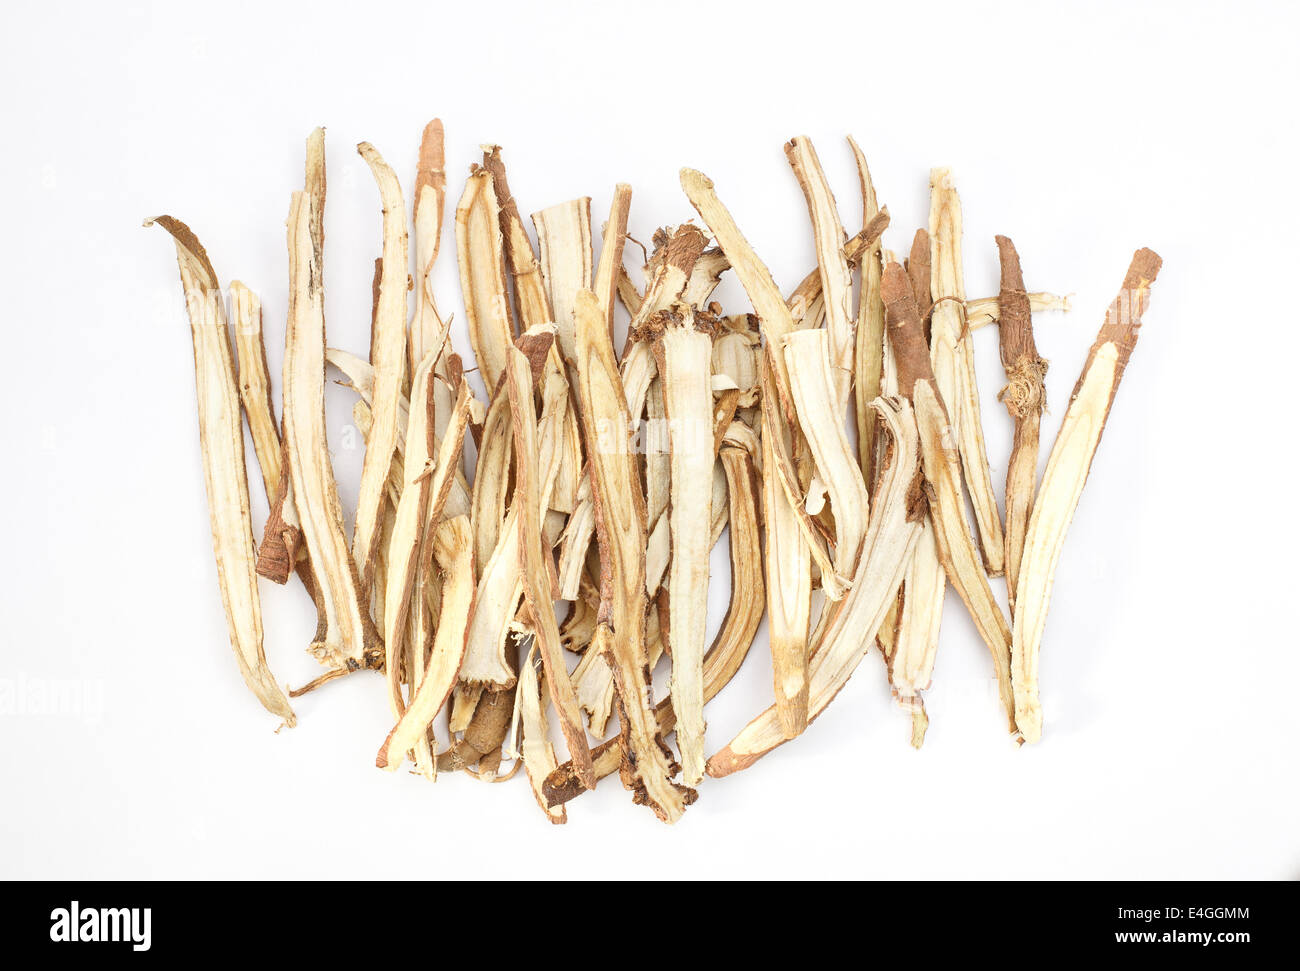 Slice liquorice roots the seasoning for cooking isolated on white background Stock Photo